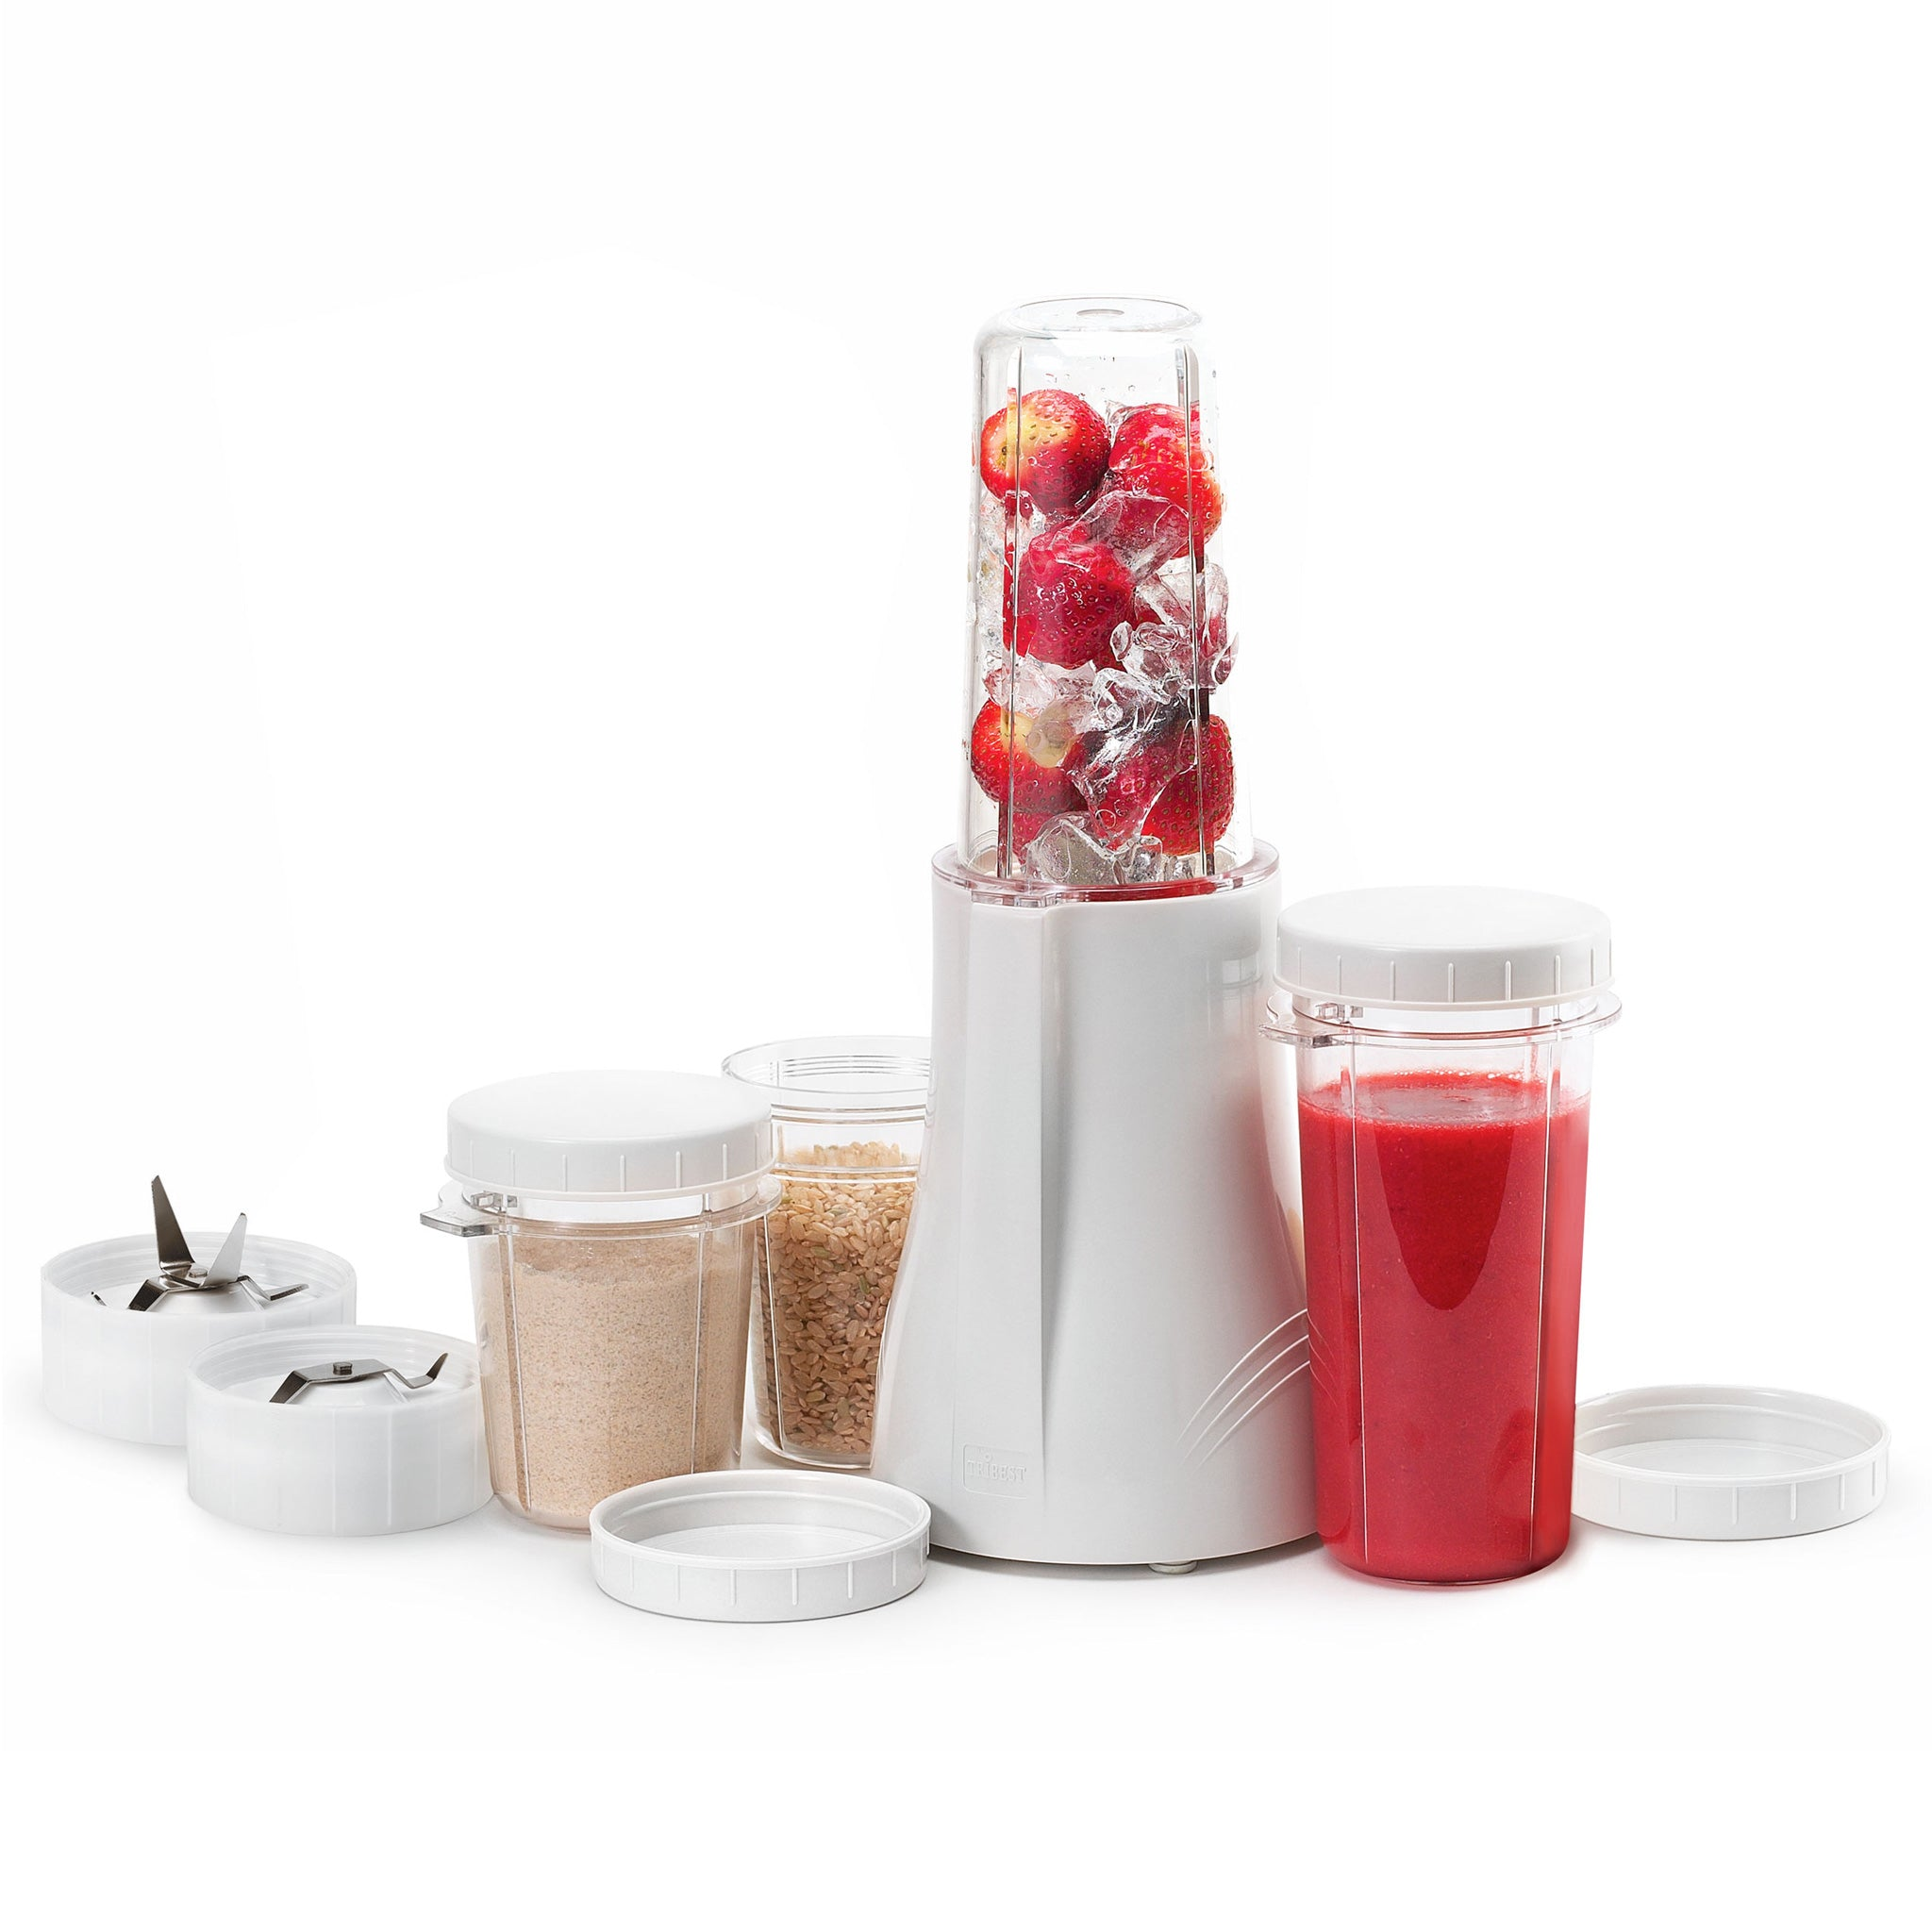 Personal Blender® Original Single-Serving Blender (11-Piece Complete Blend and Grind Set) PB-250-A - Tribest